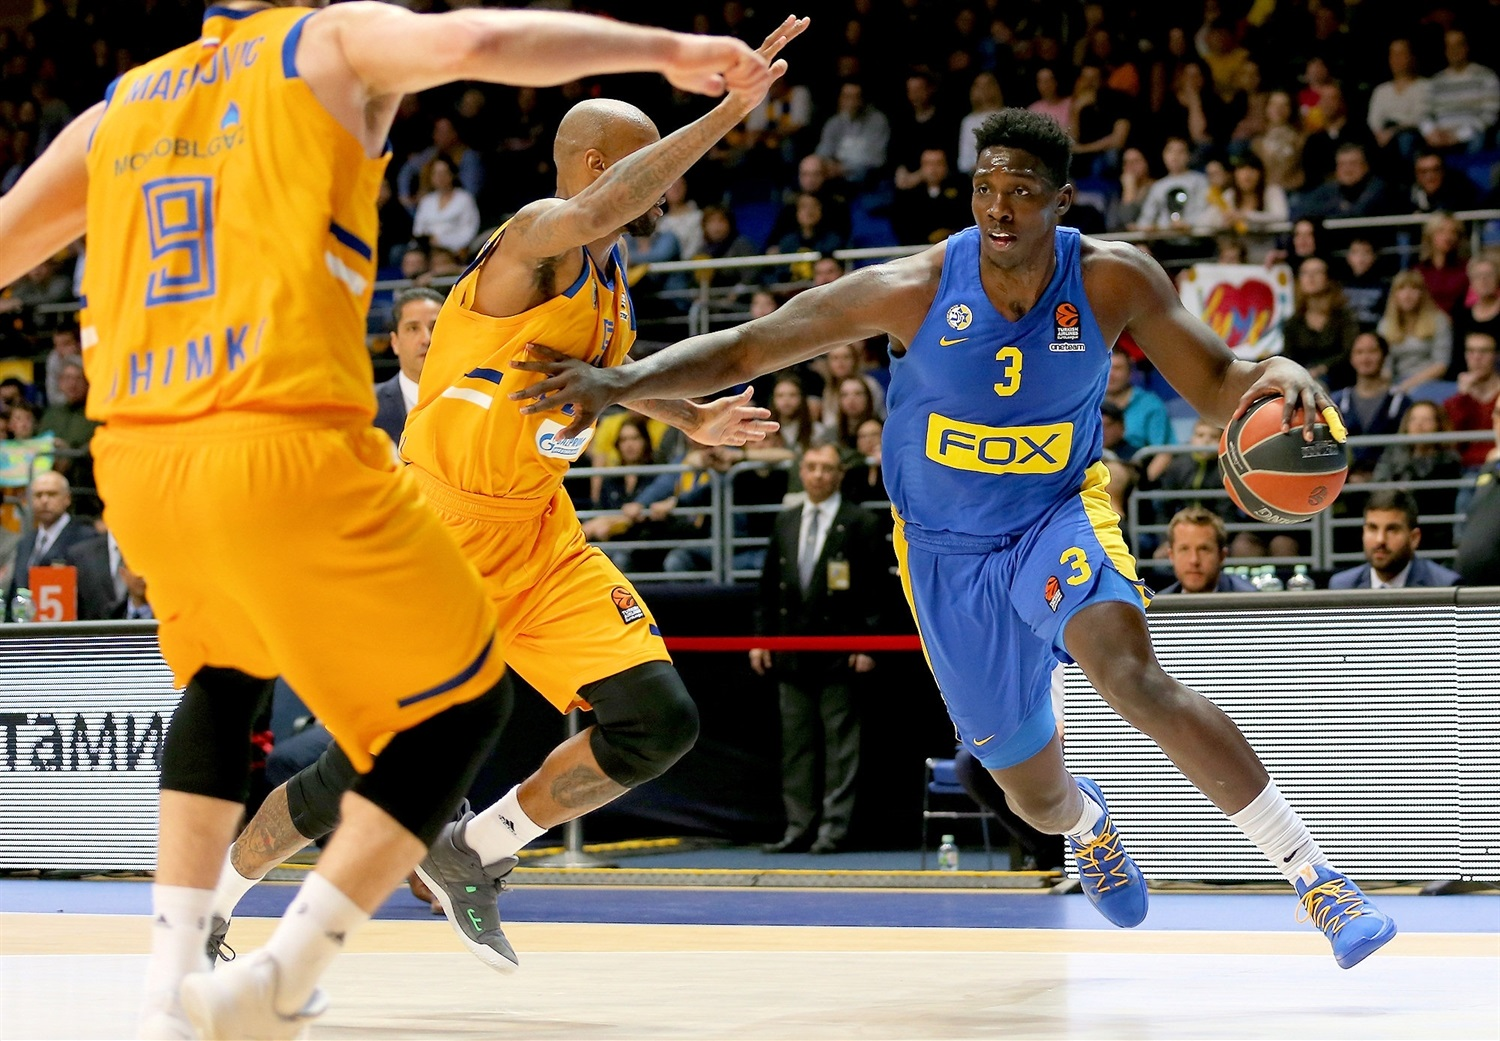 Johnny OBryant - Maccabi FOX Tel Aviv - EB18